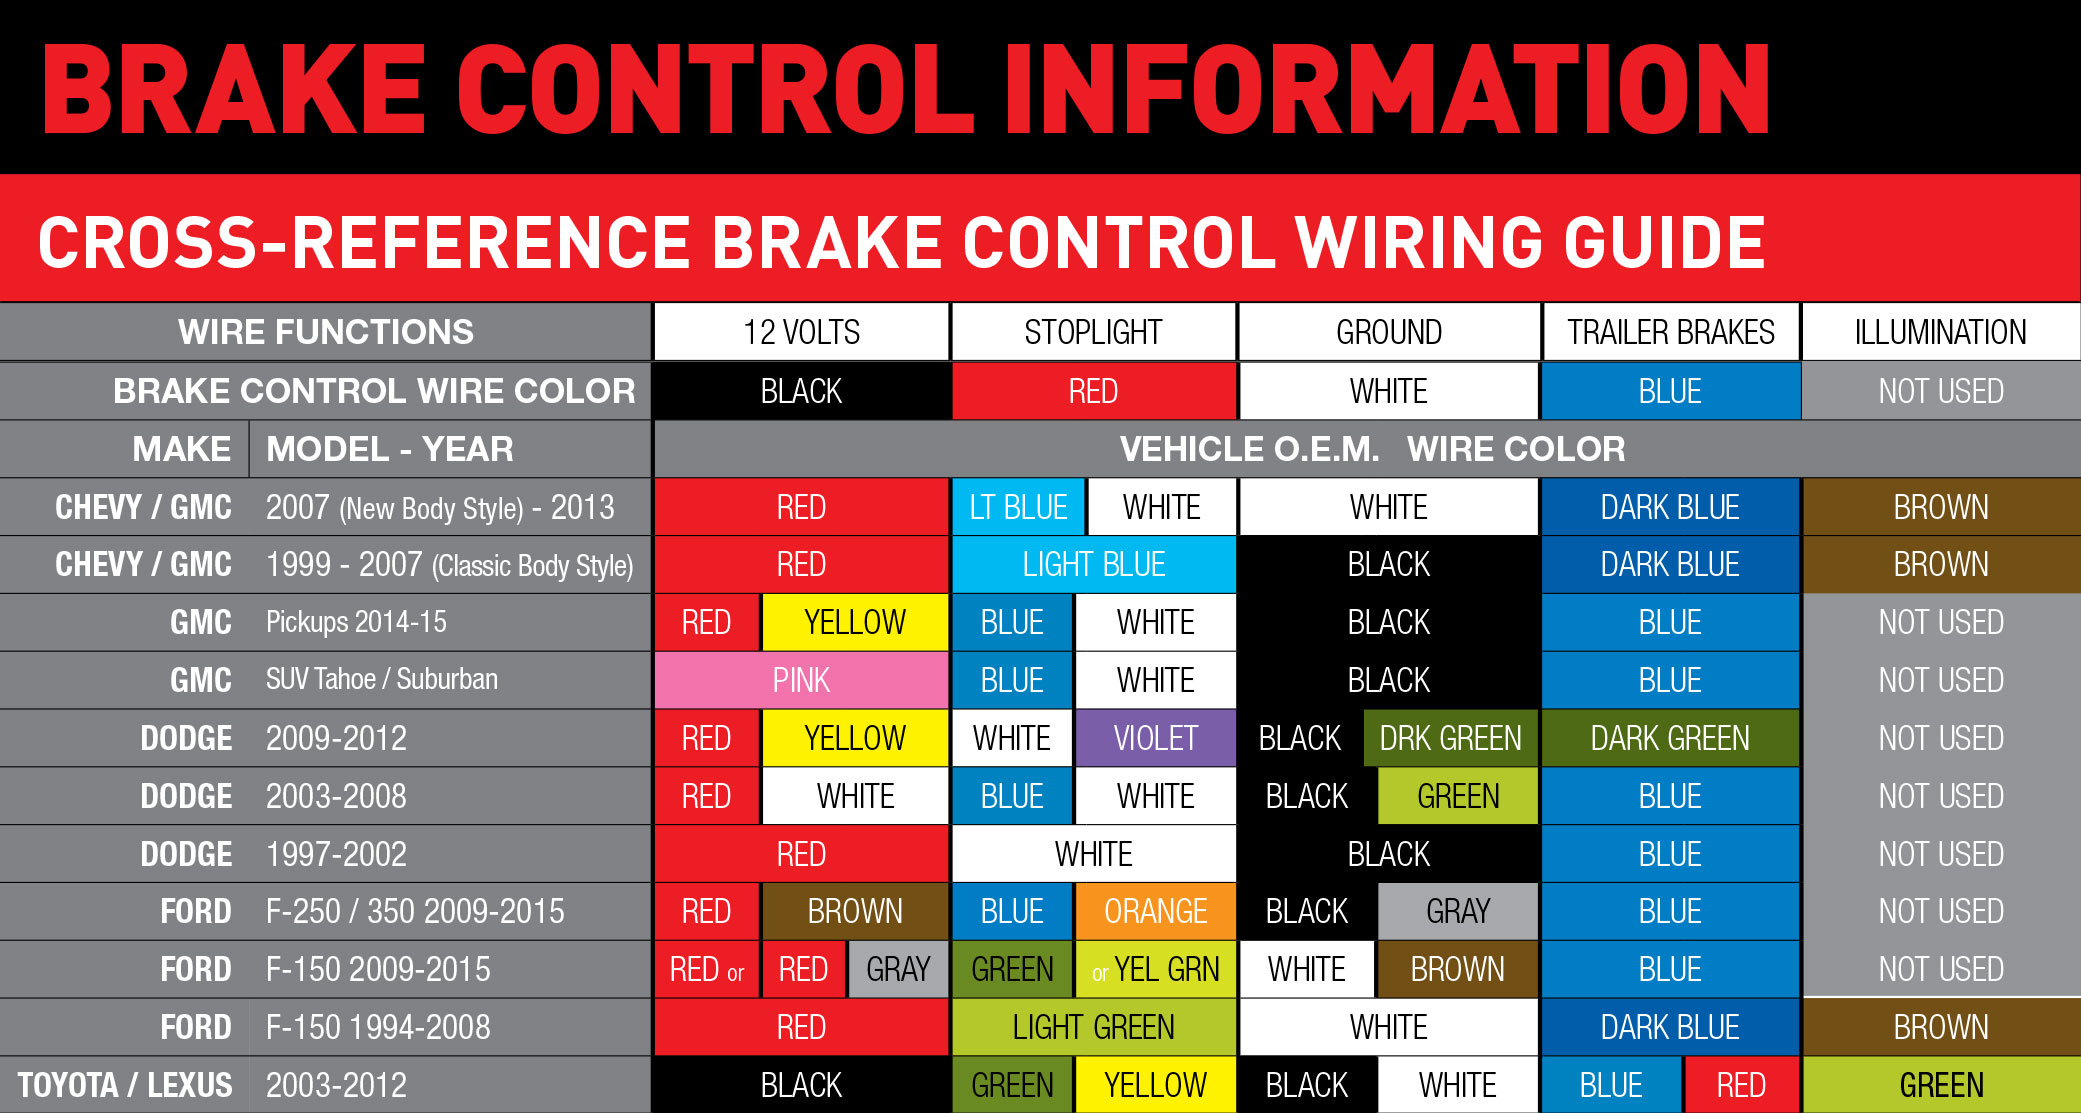 Wiring Guides | Ford F550 Brake Controller Wiring Diagram |  | Hopkins Towing Solutions